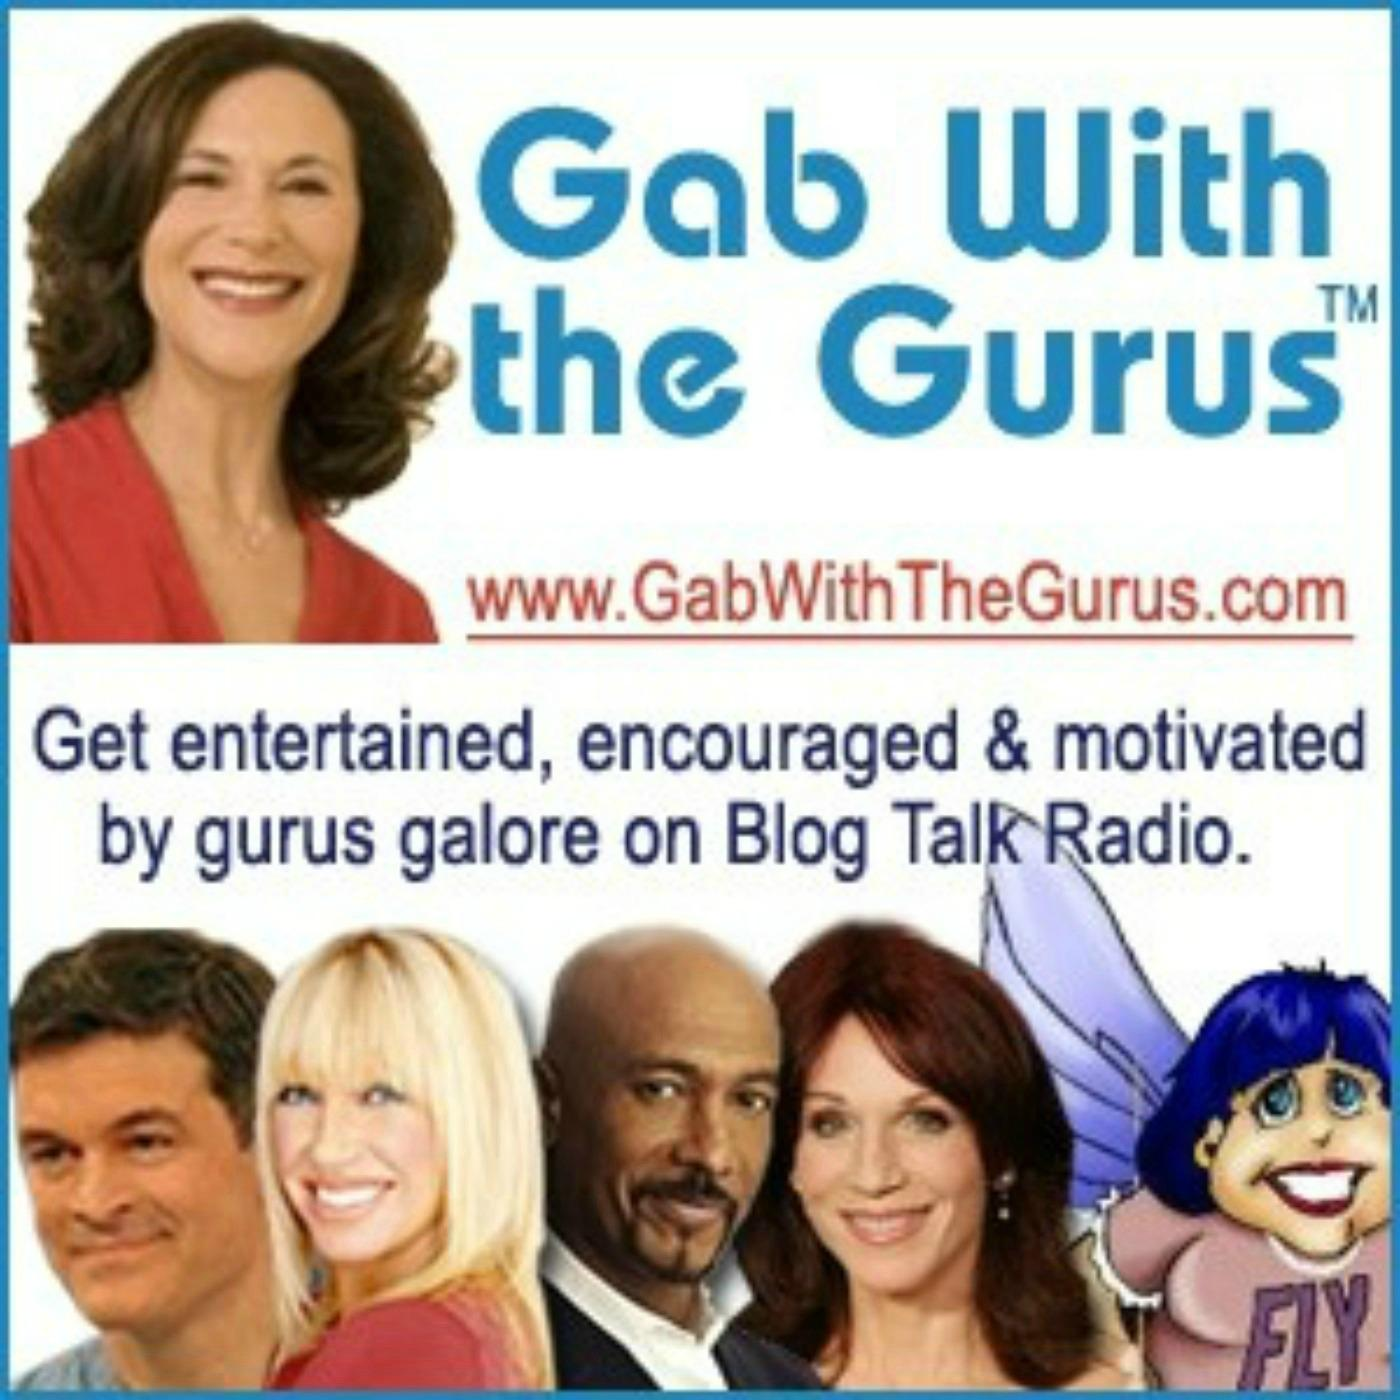 Gab with the Gurus with Connie Bennett